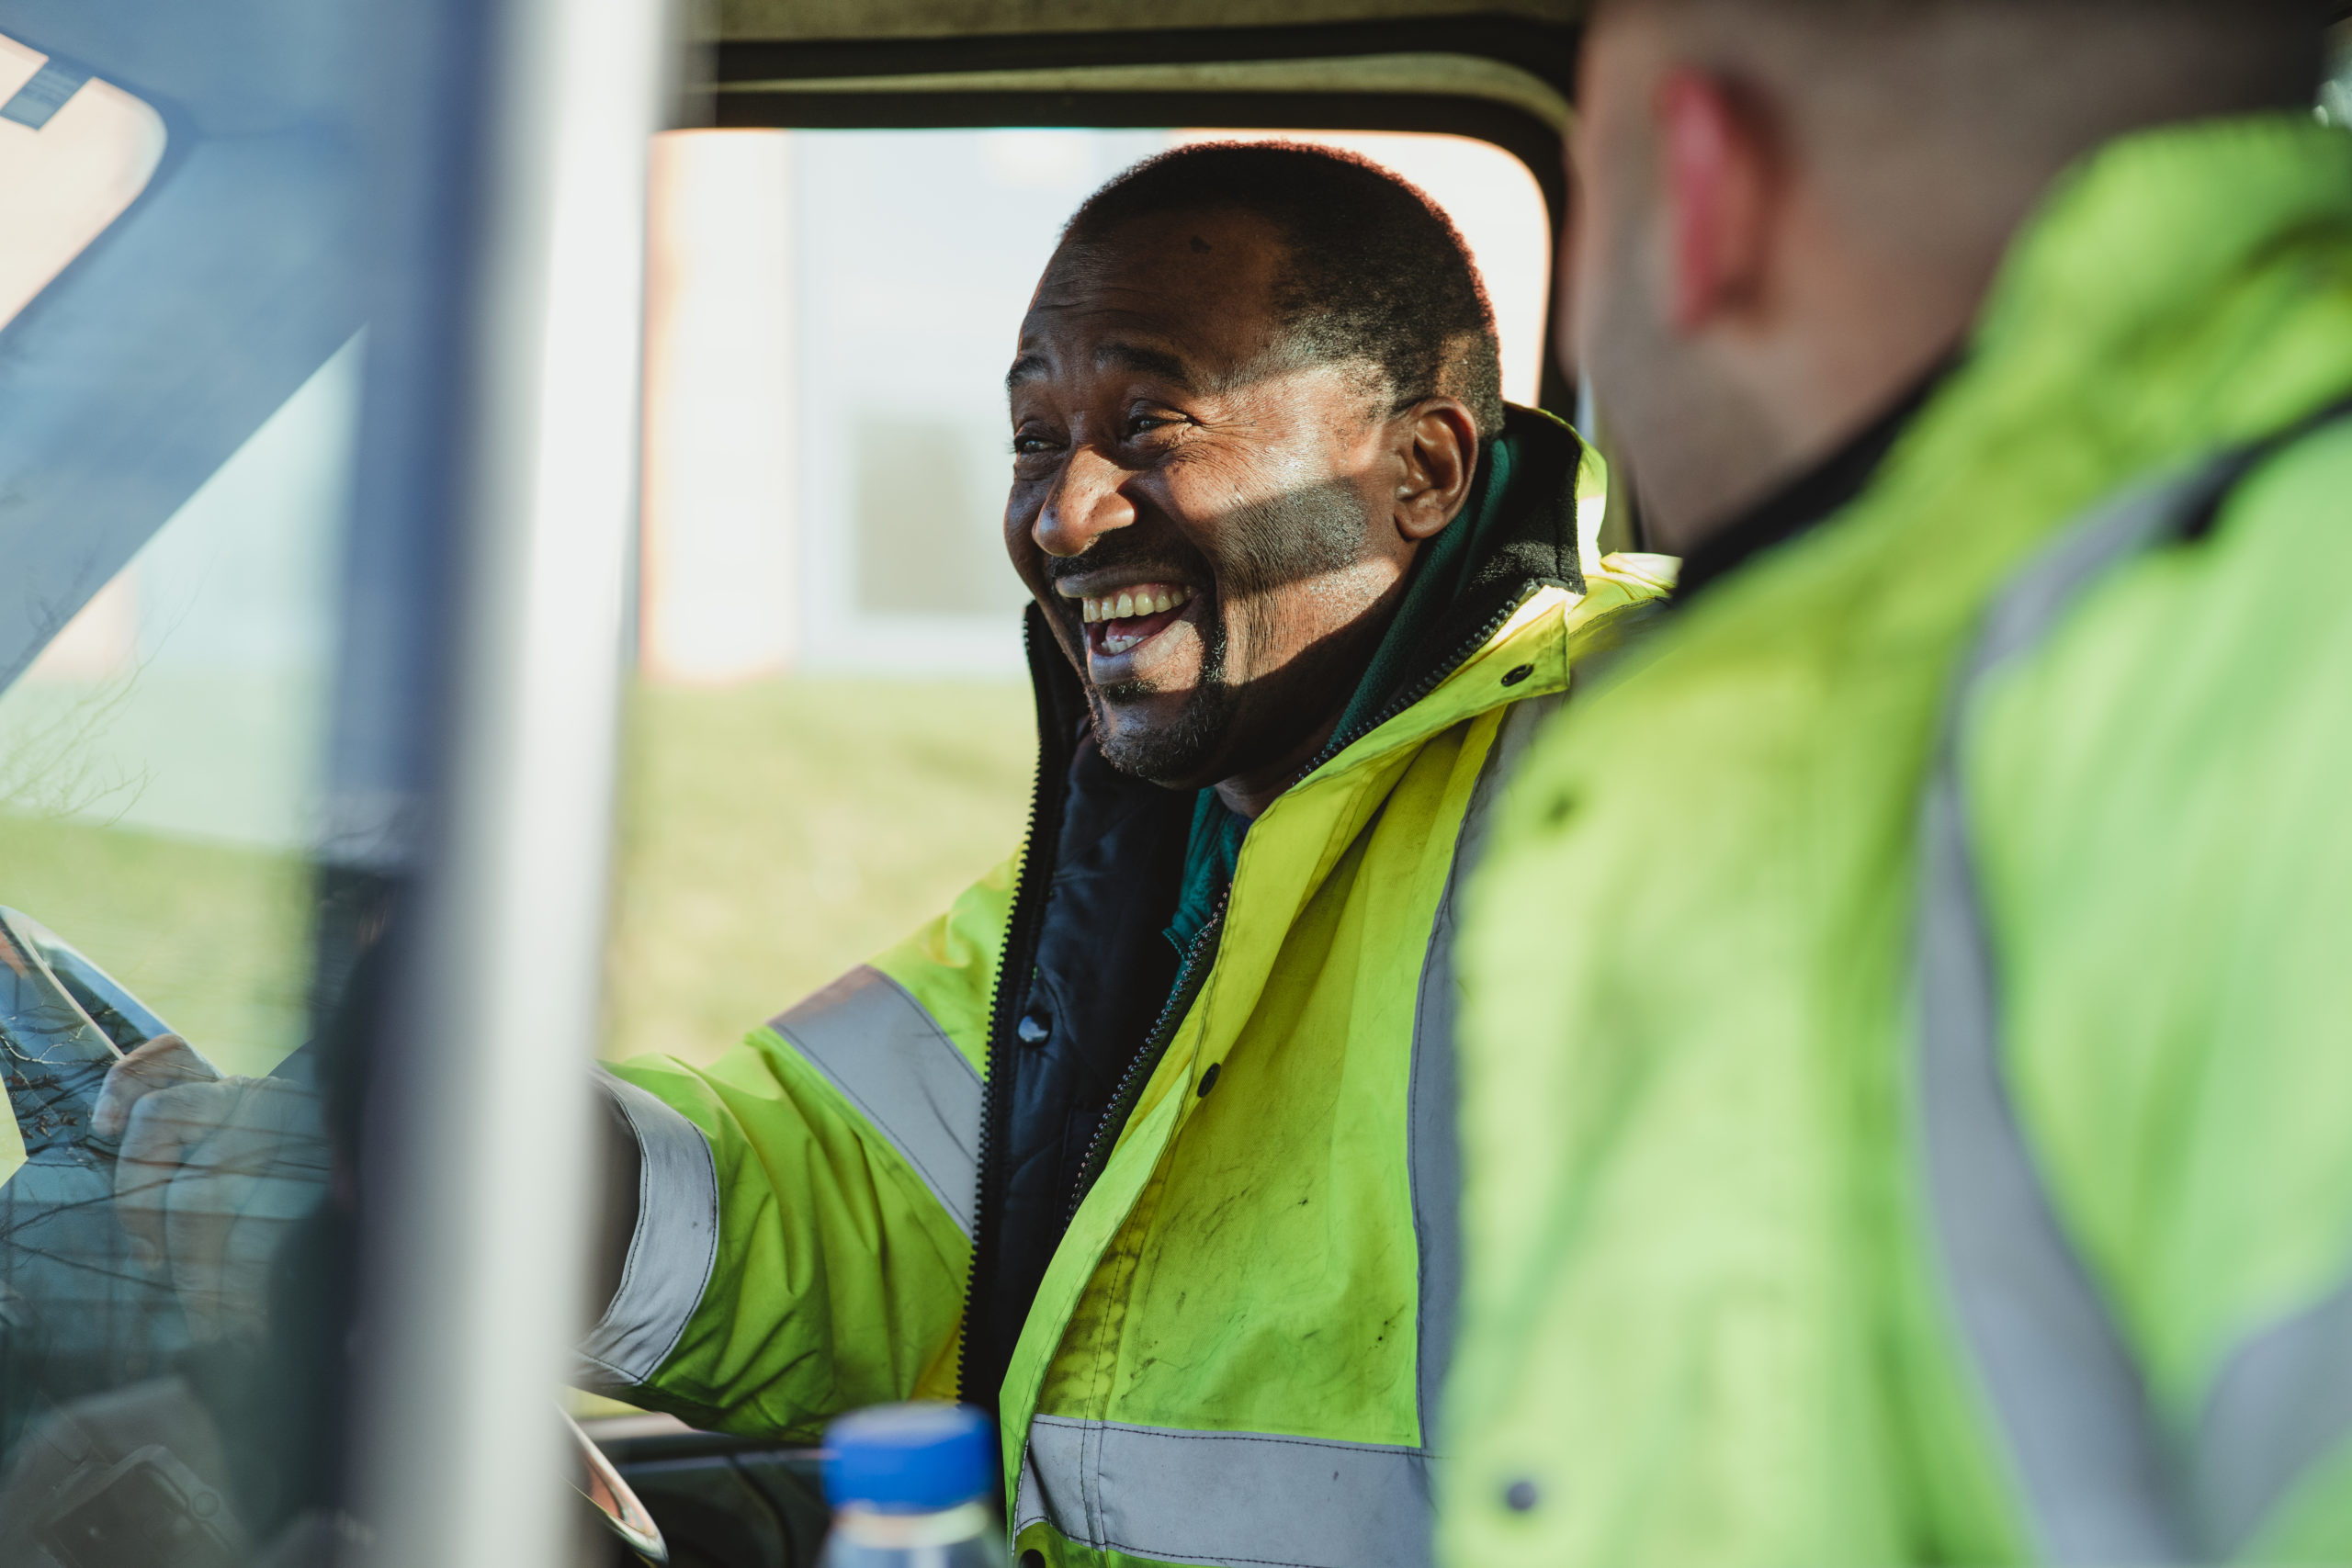 Senior man and his son are laughing and talking together in their work van.